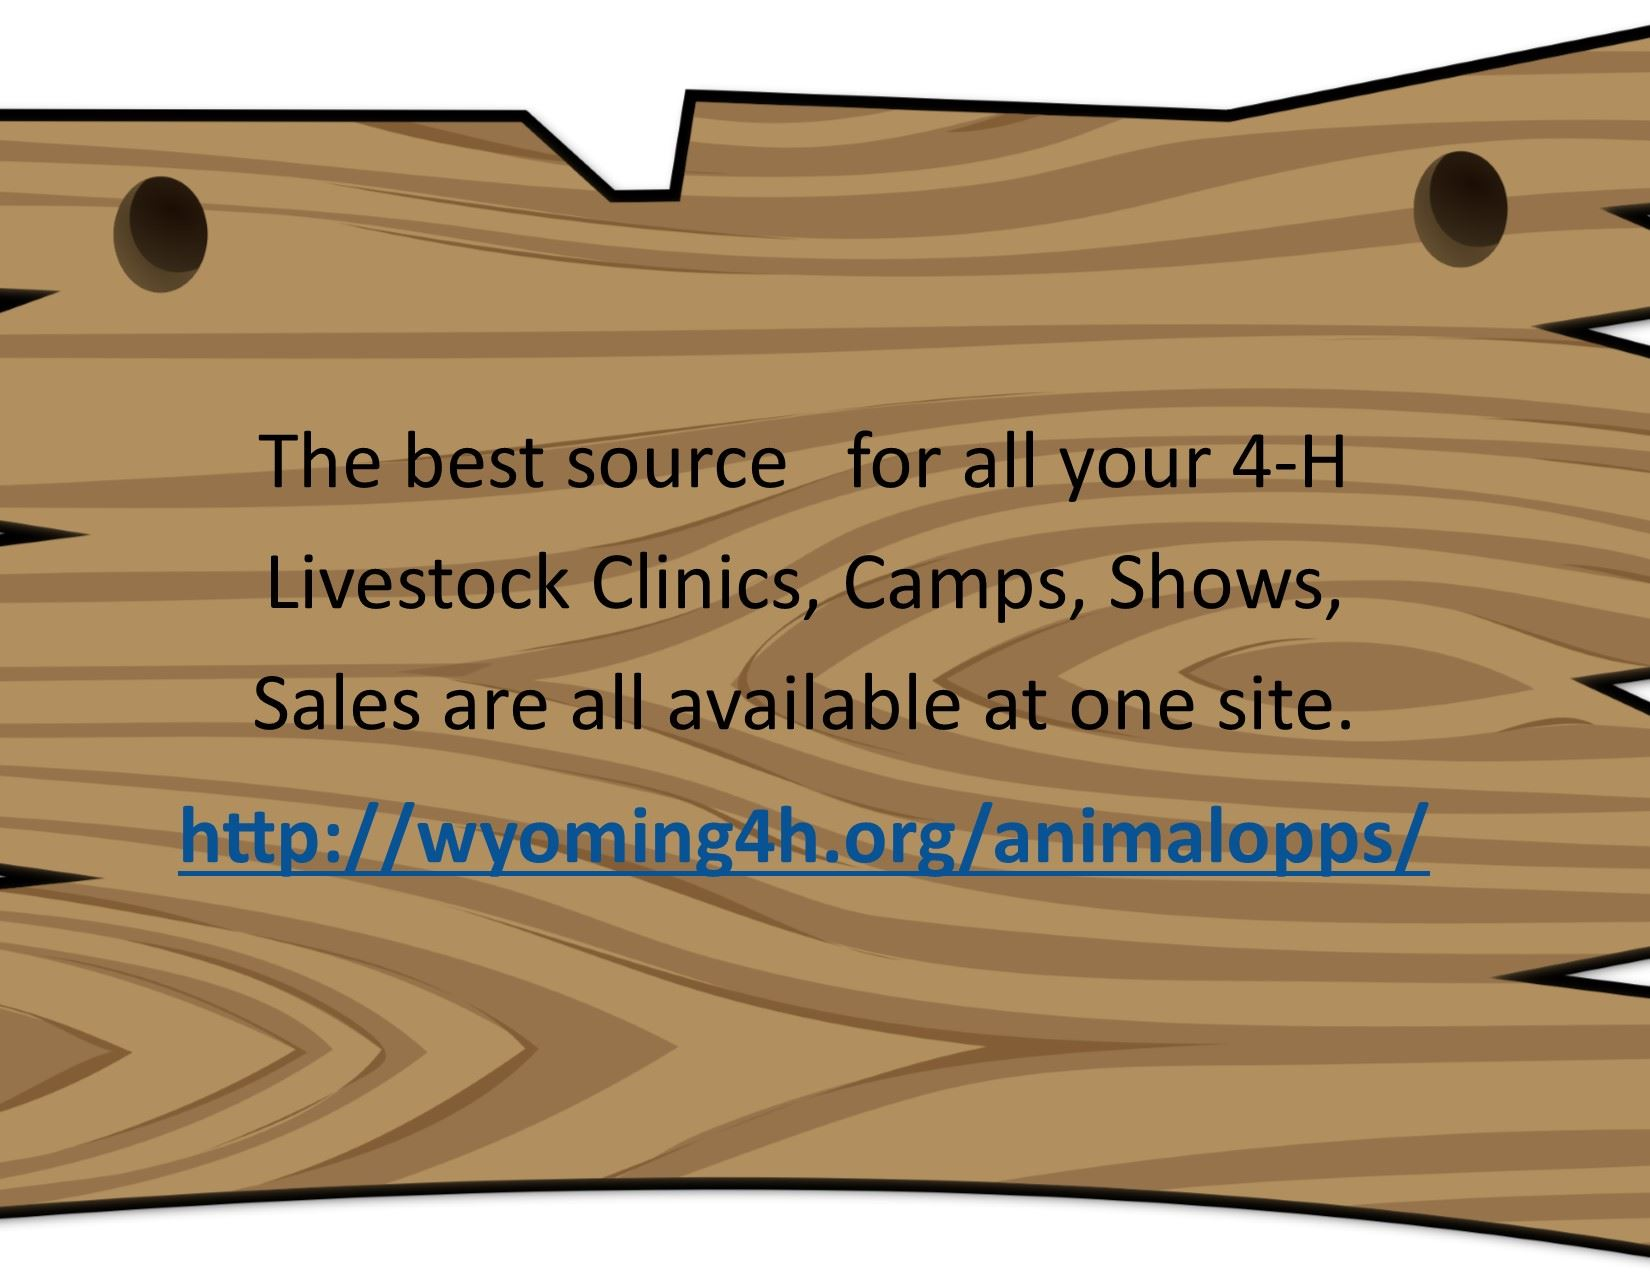 UW Livestock Page for 4-H